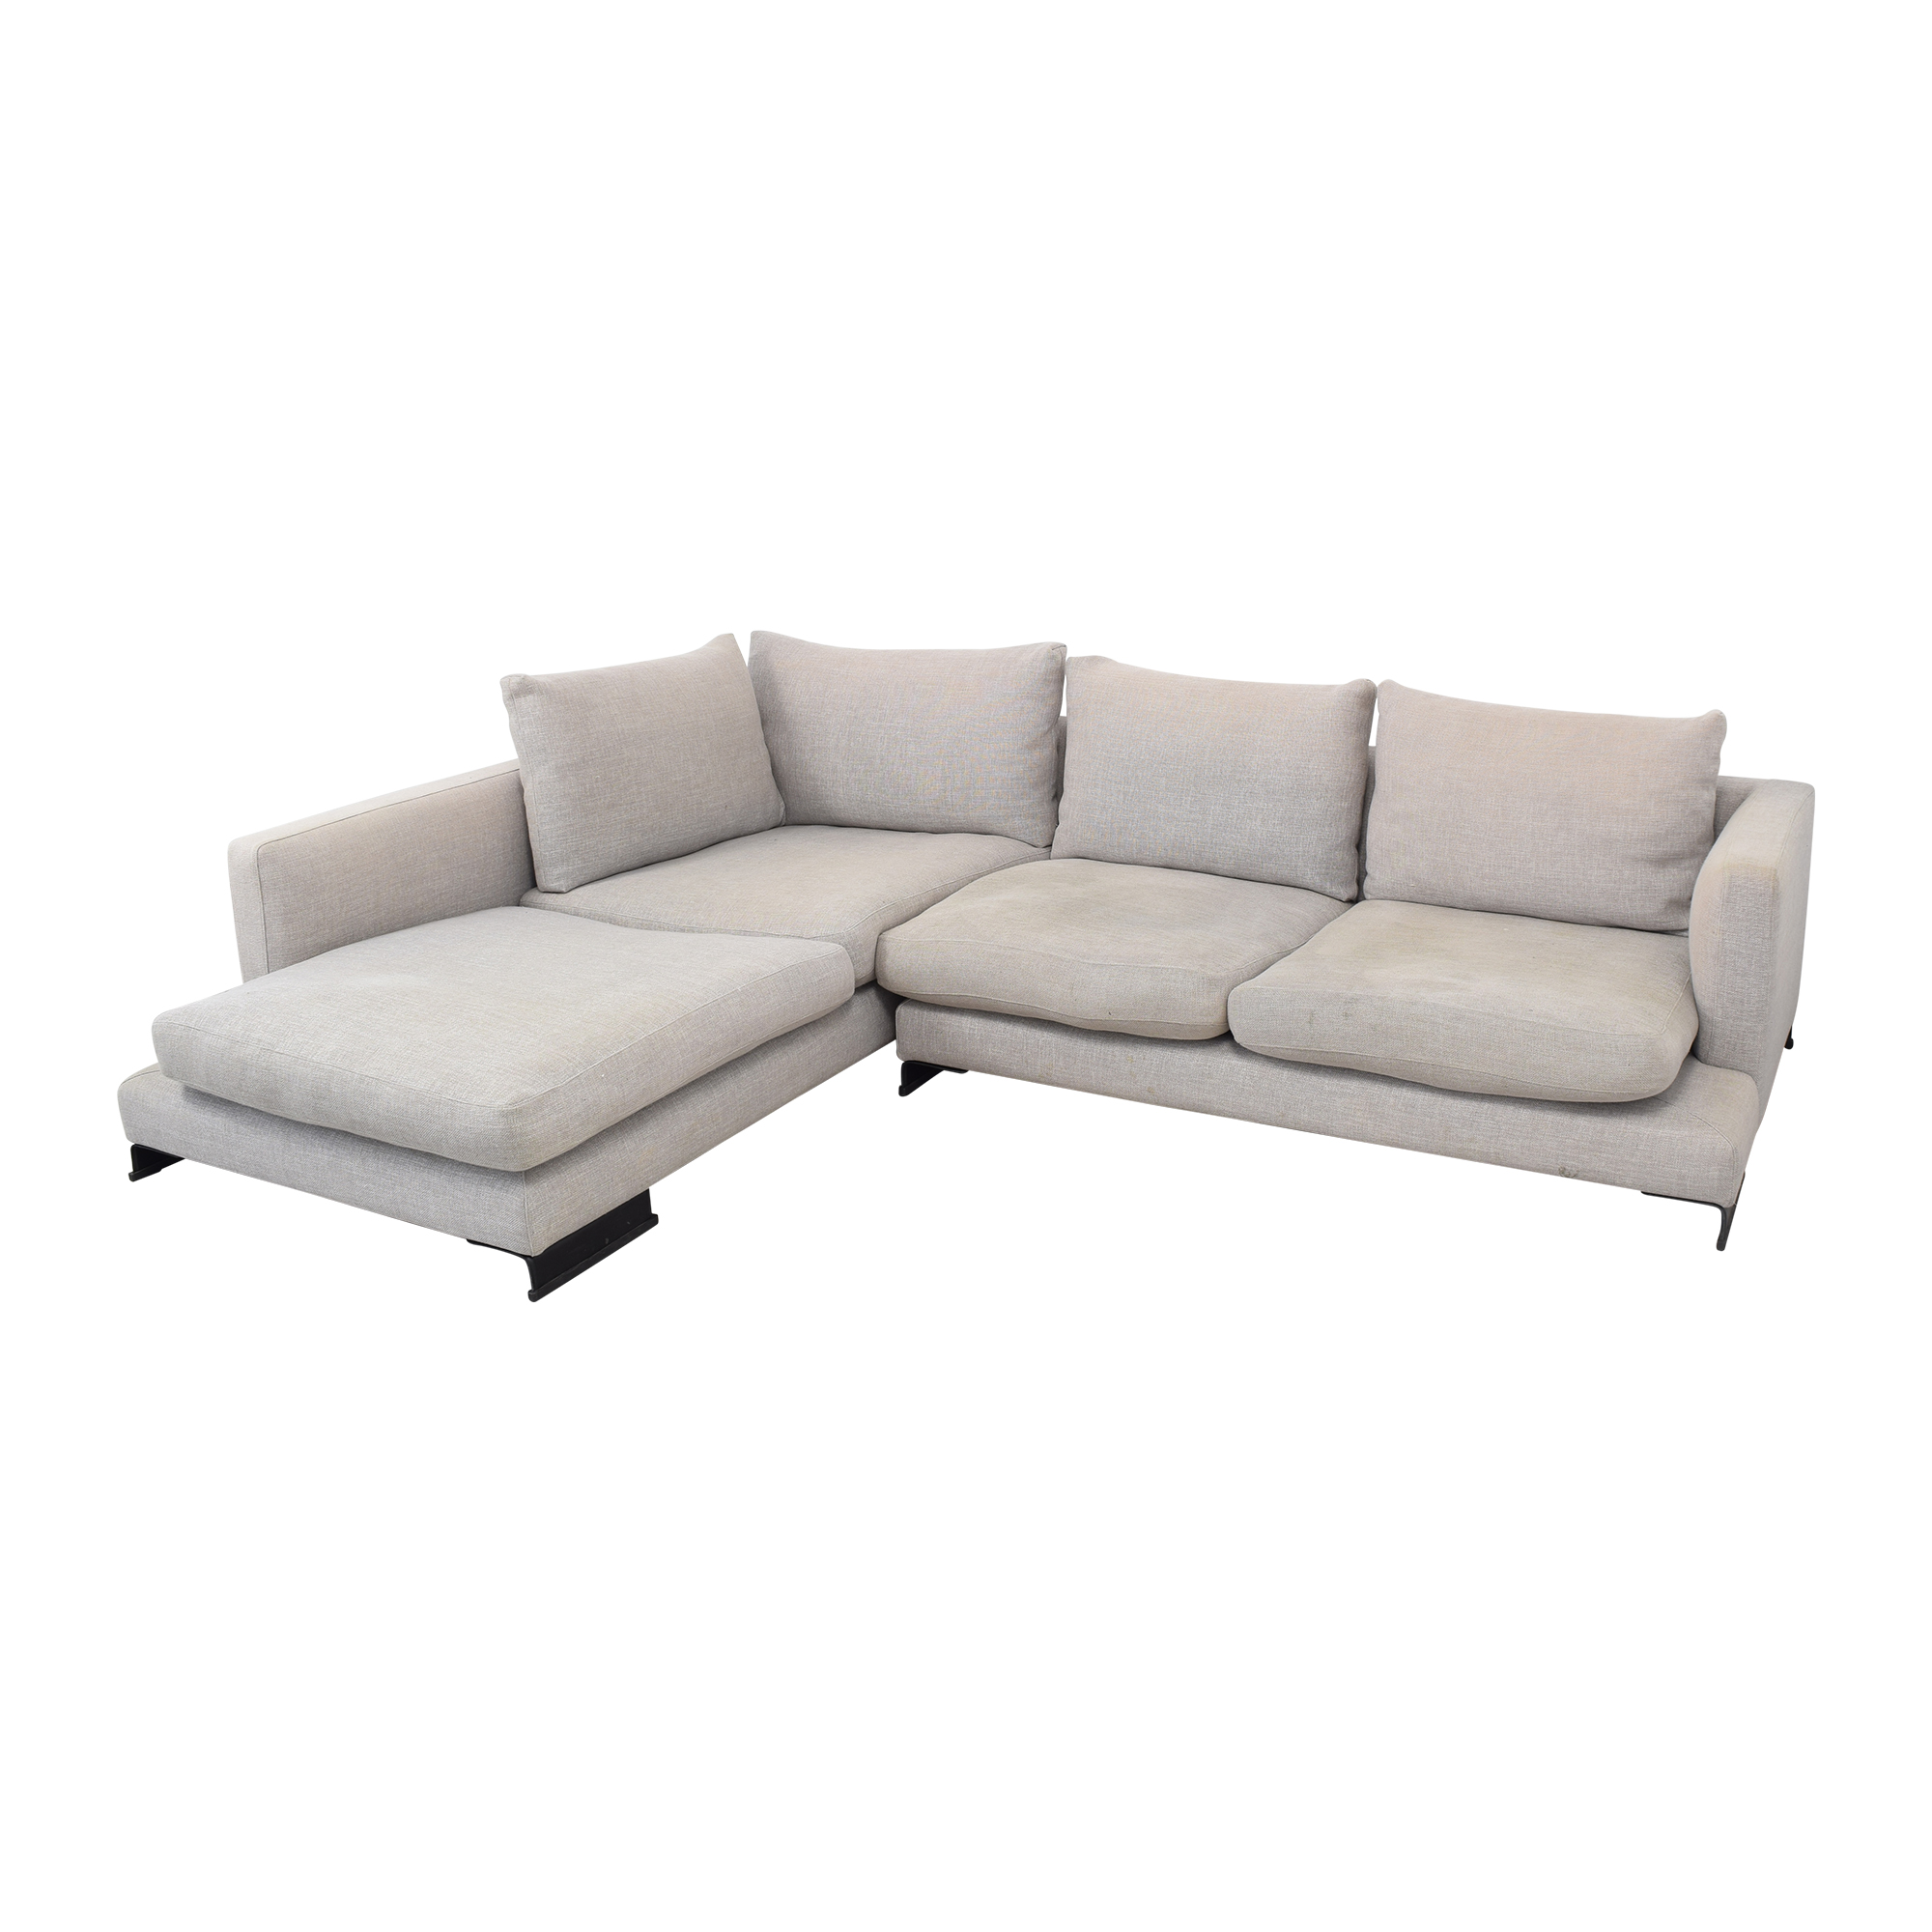 shop Camerich Camerich Lazy Time Sectional online